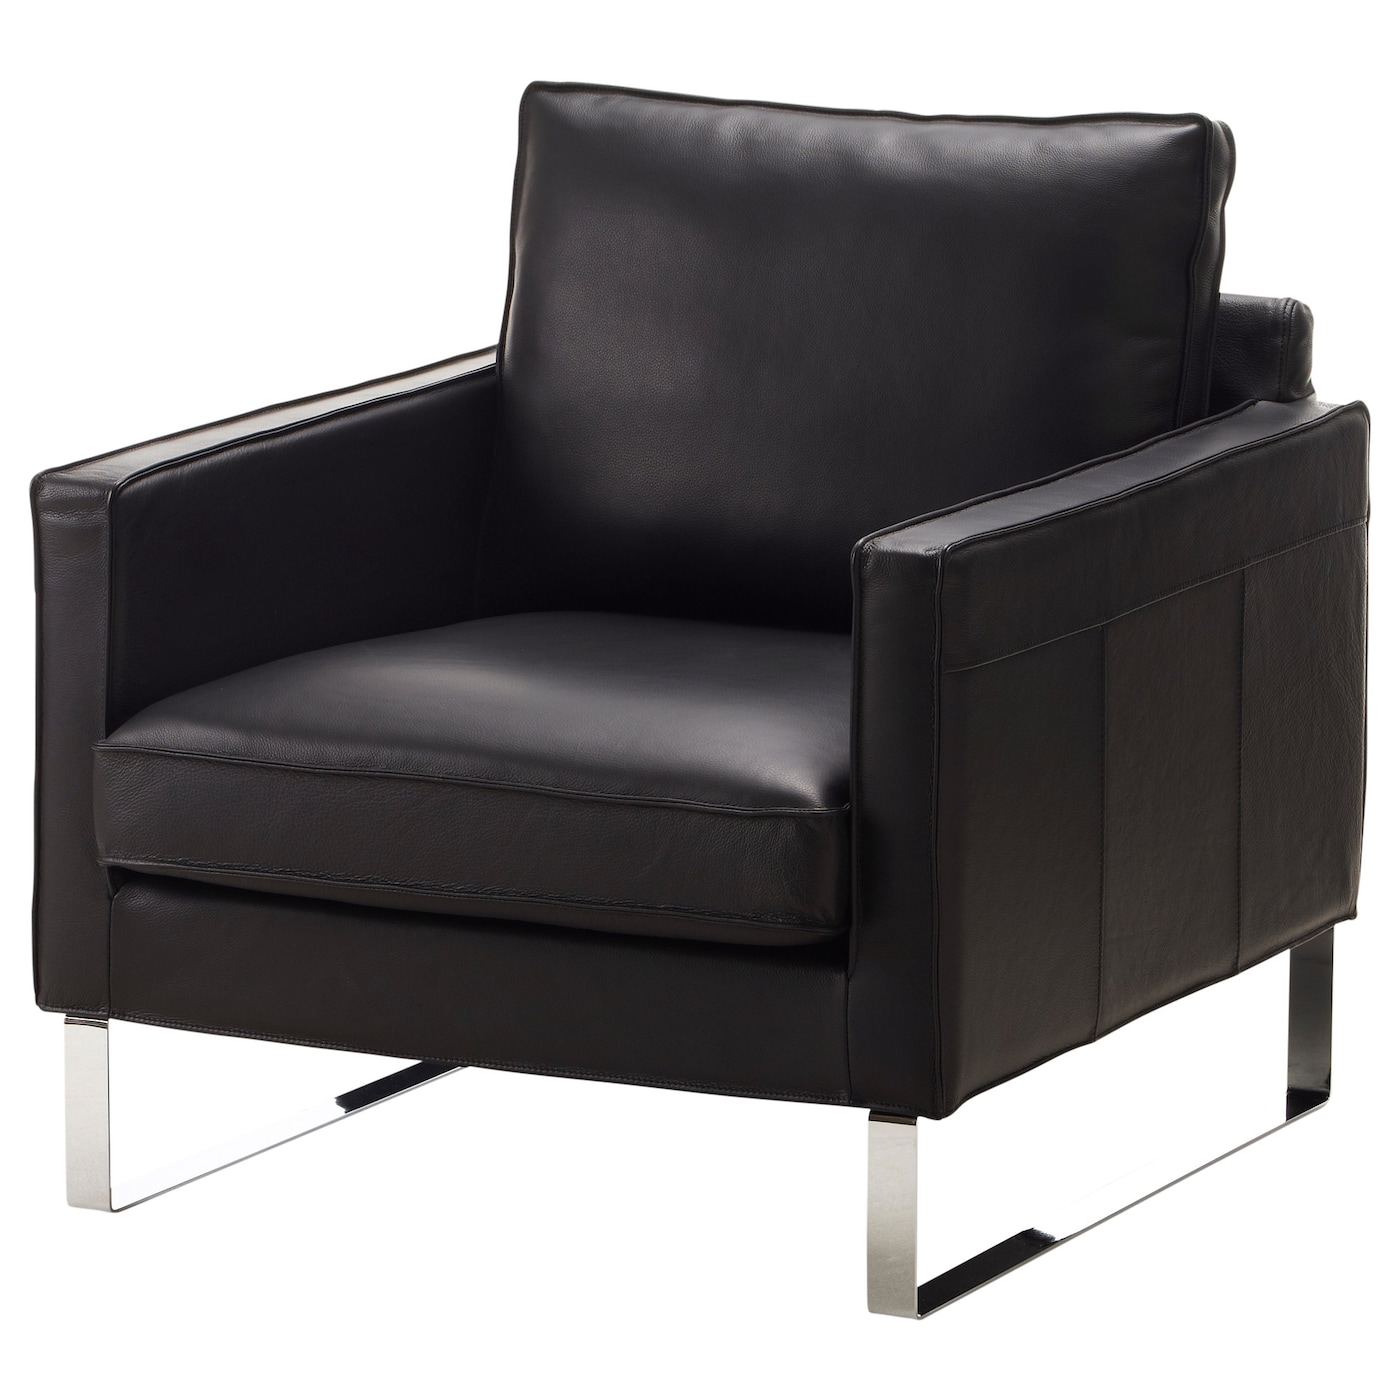 black leather chair ikea small accent living room chairs armchairs shop at ireland